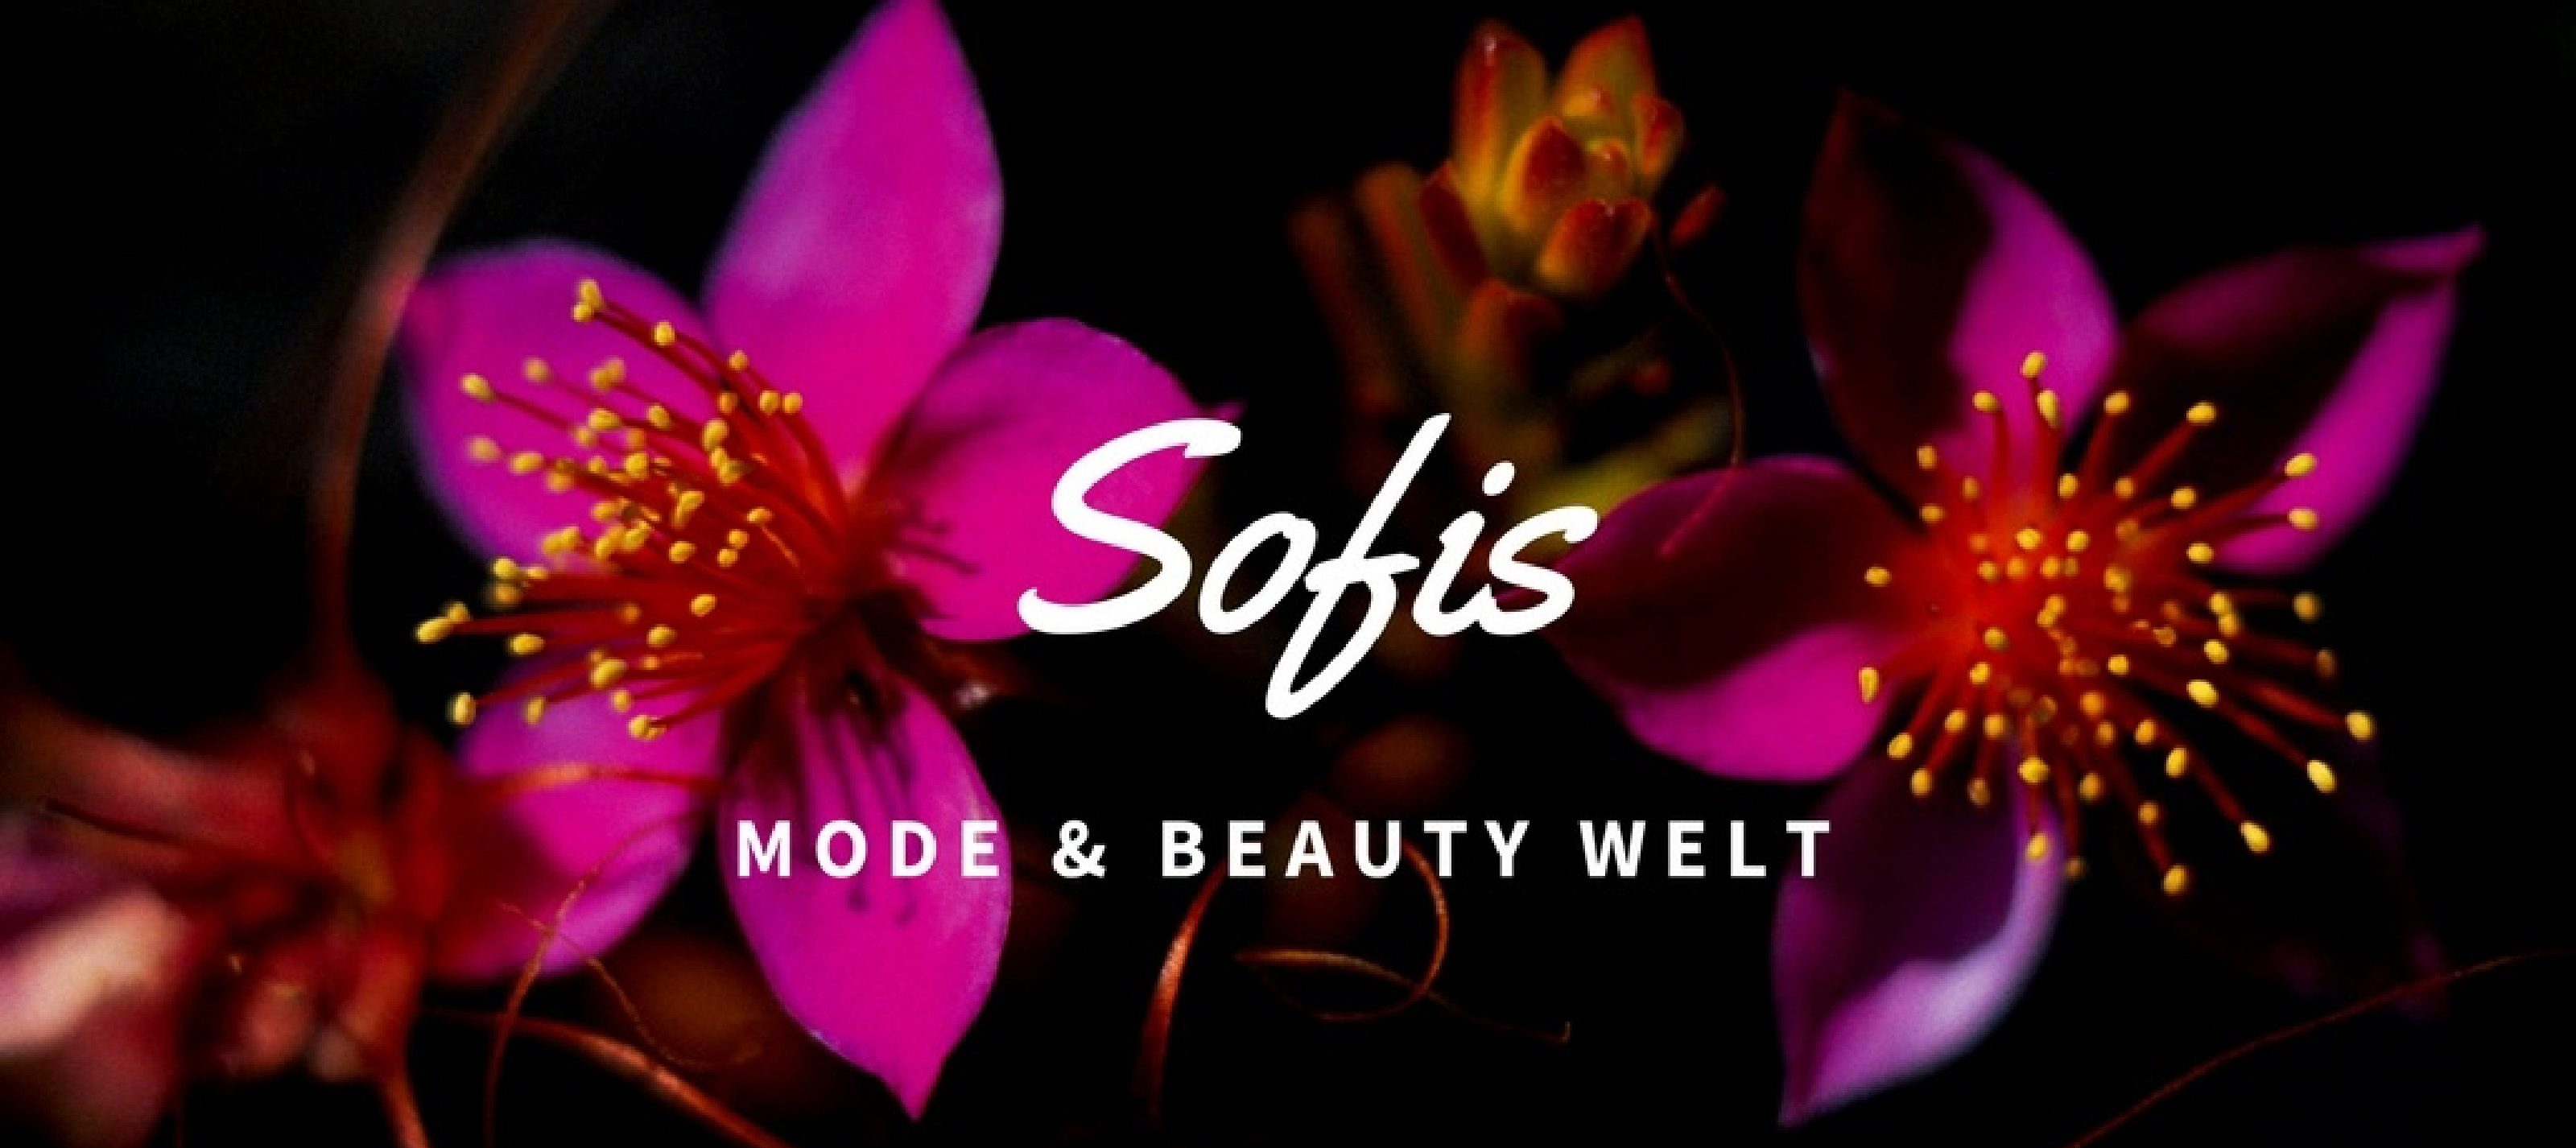 Sofis Fashion & Beauty Welt